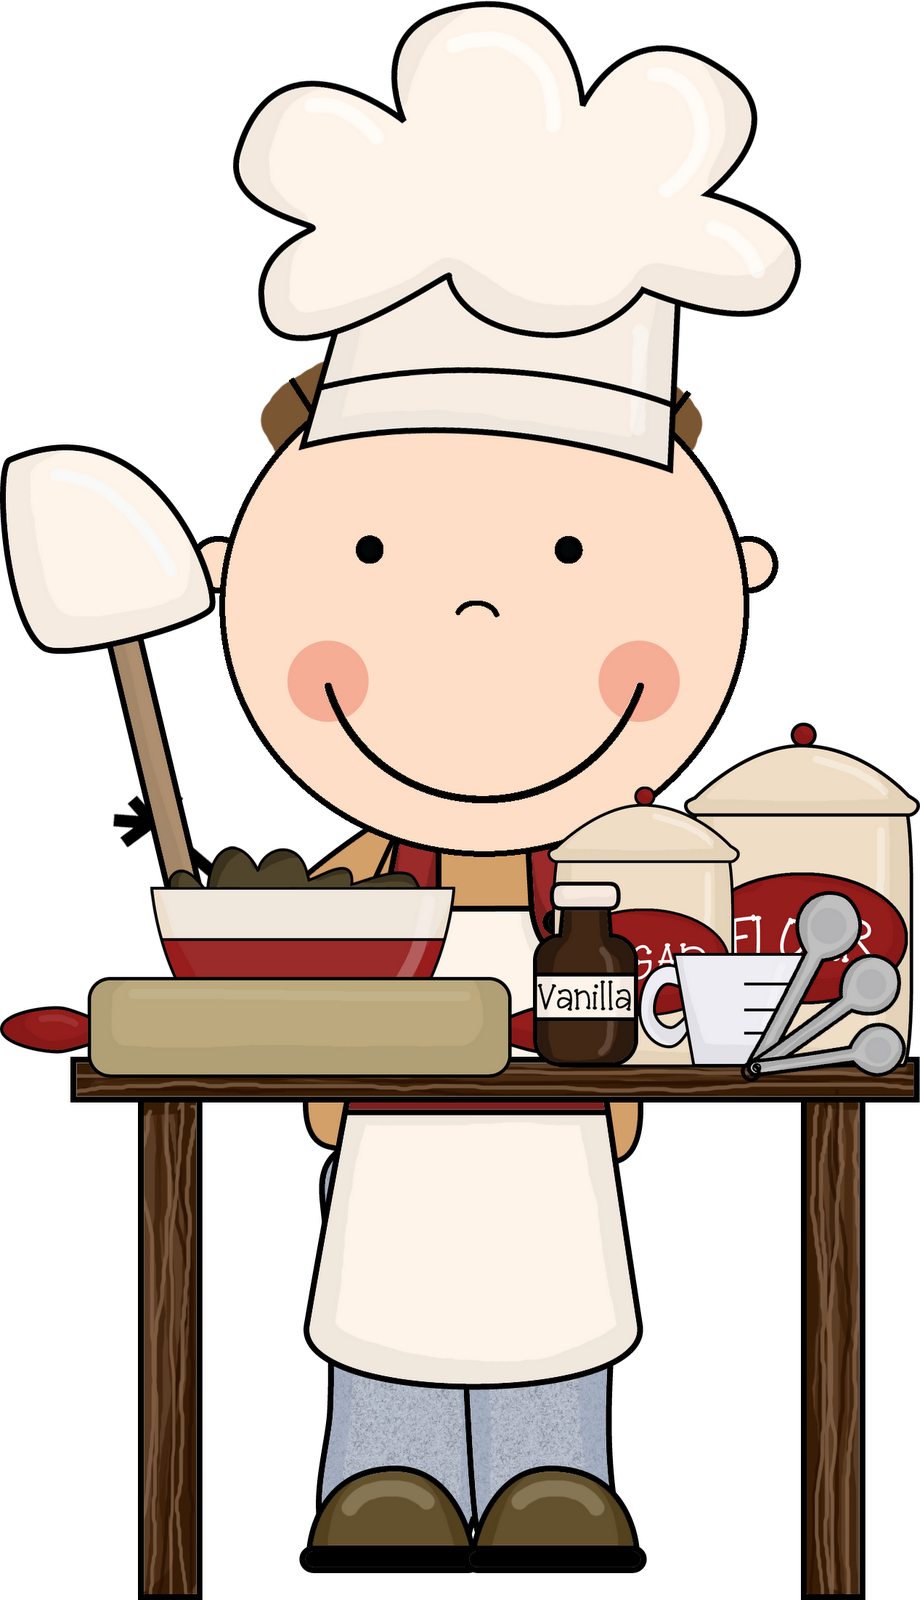 Free prepare food cliparts. Cook clipart pastry chef